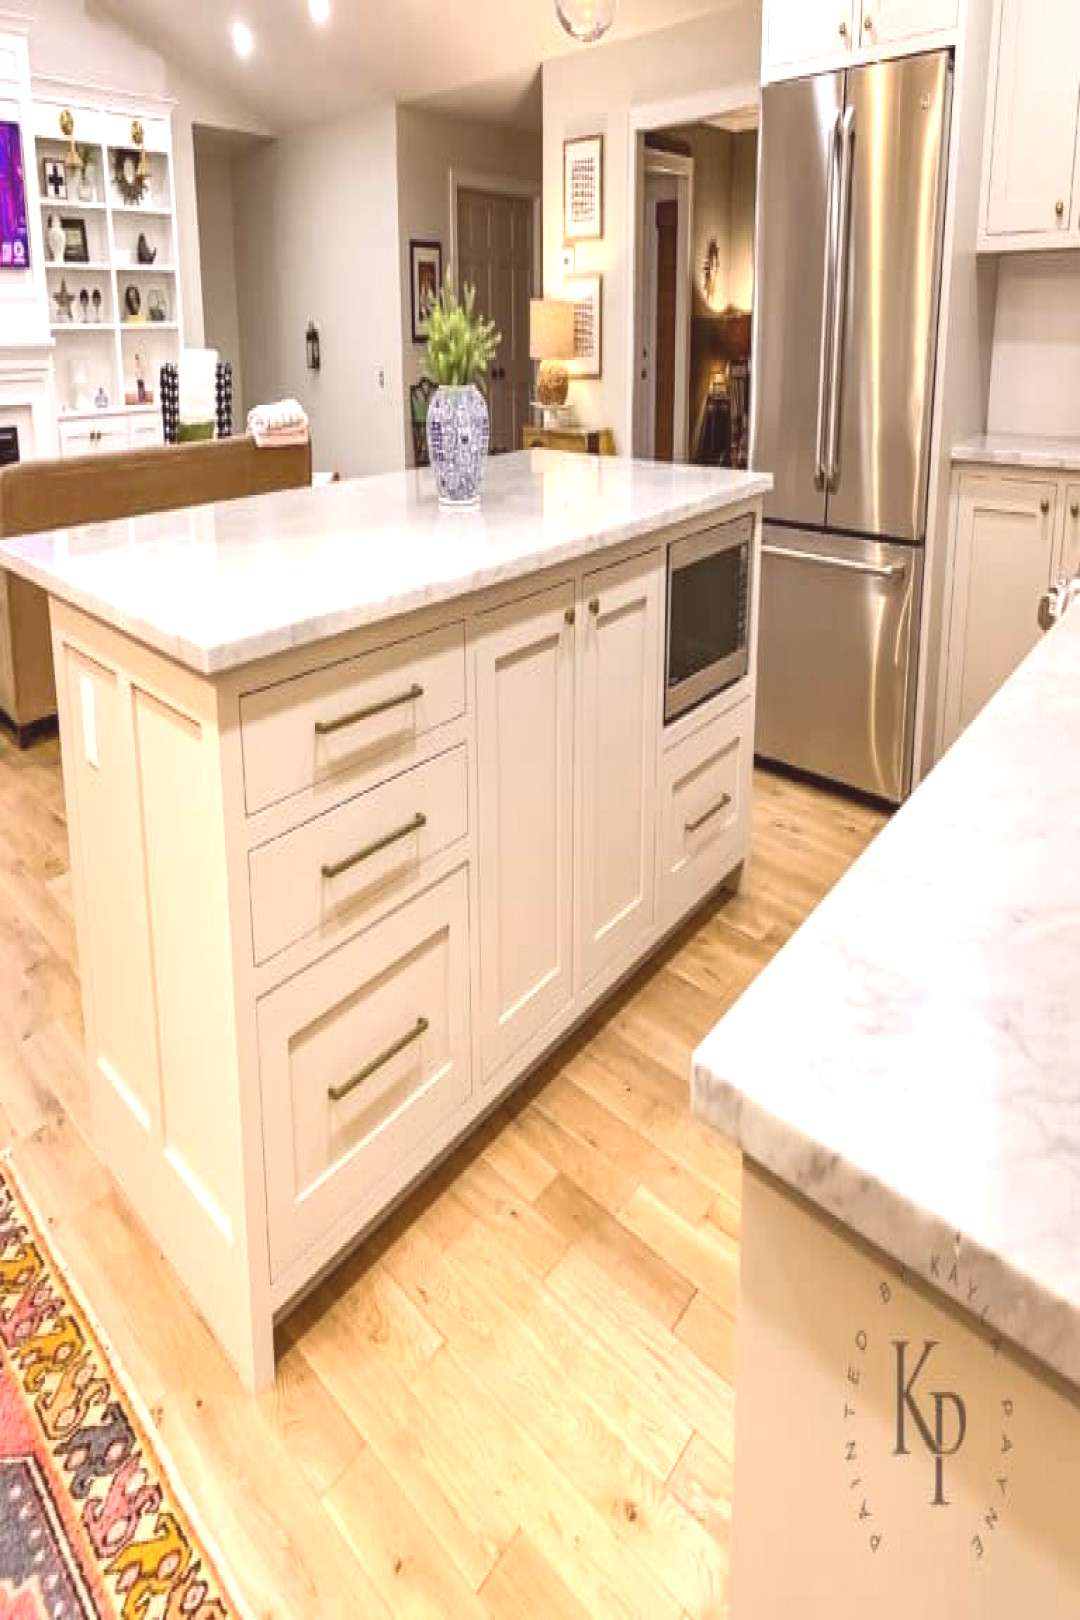 Revere Pewter Kitchen Cabinets - Painted by Kayla Payne#cabinets